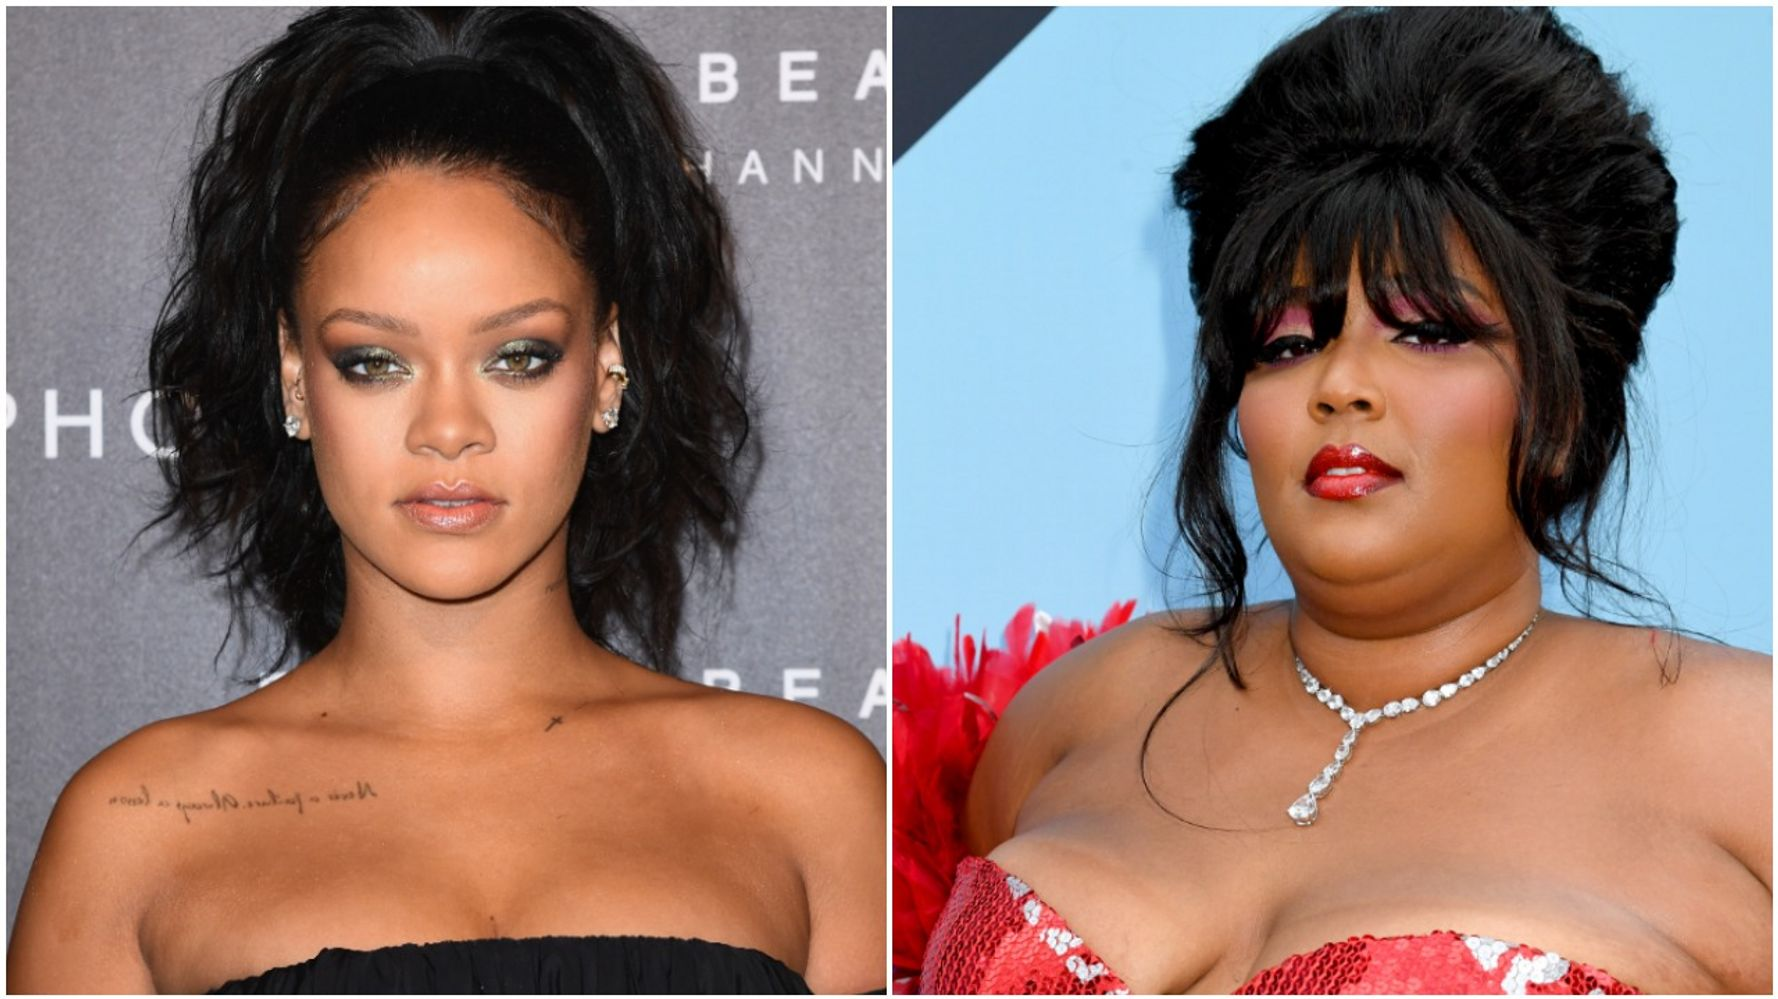 Westlake Legal Group 5d7955492300001005514ece Rihanna Says, 'Gosh I Love Lizzo,' Wants To Collaborate With The Singer